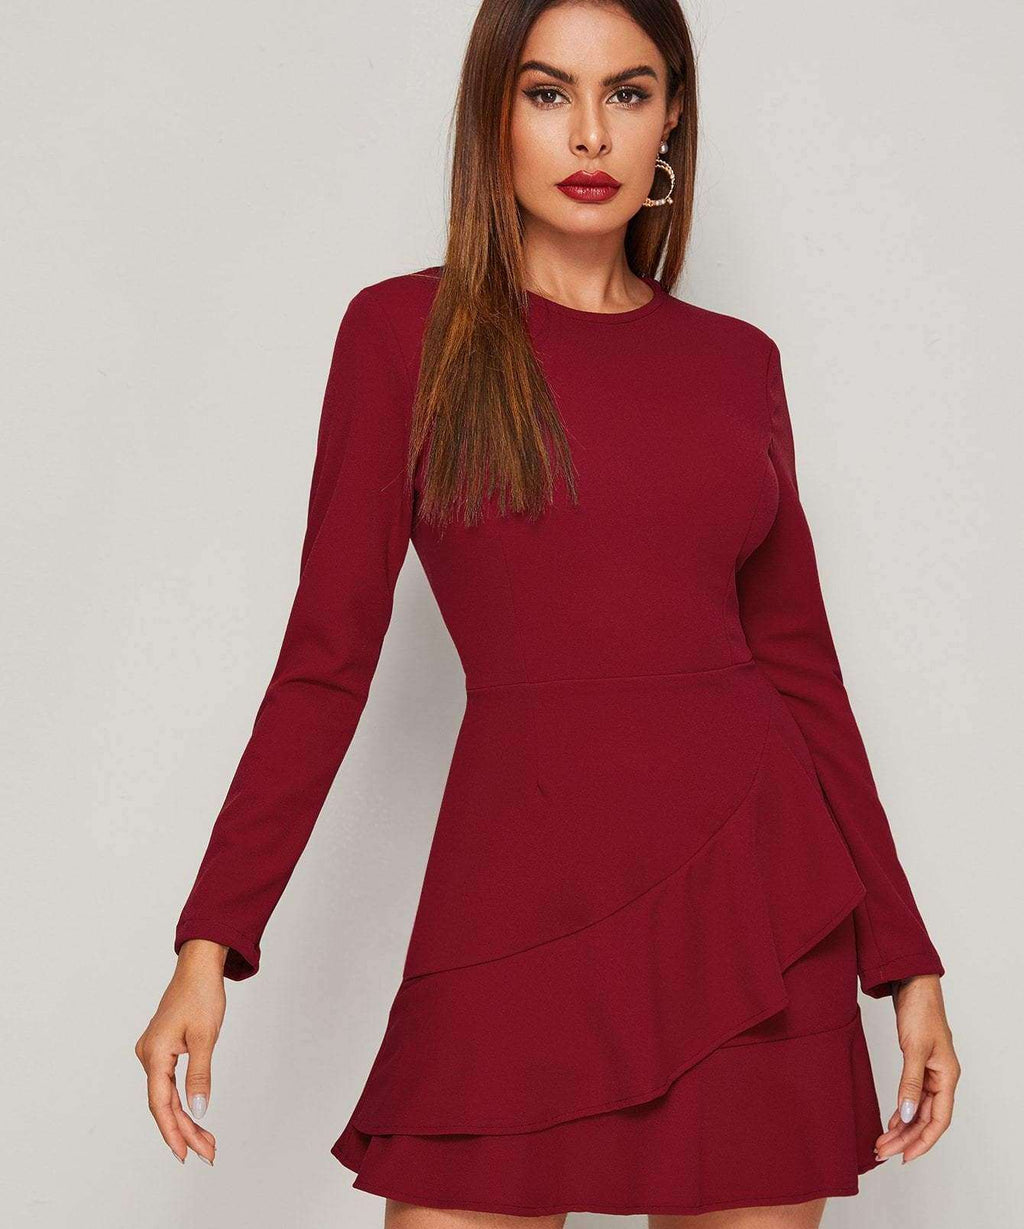 Romantic Night Long Sleeve Dress - S - Dresses